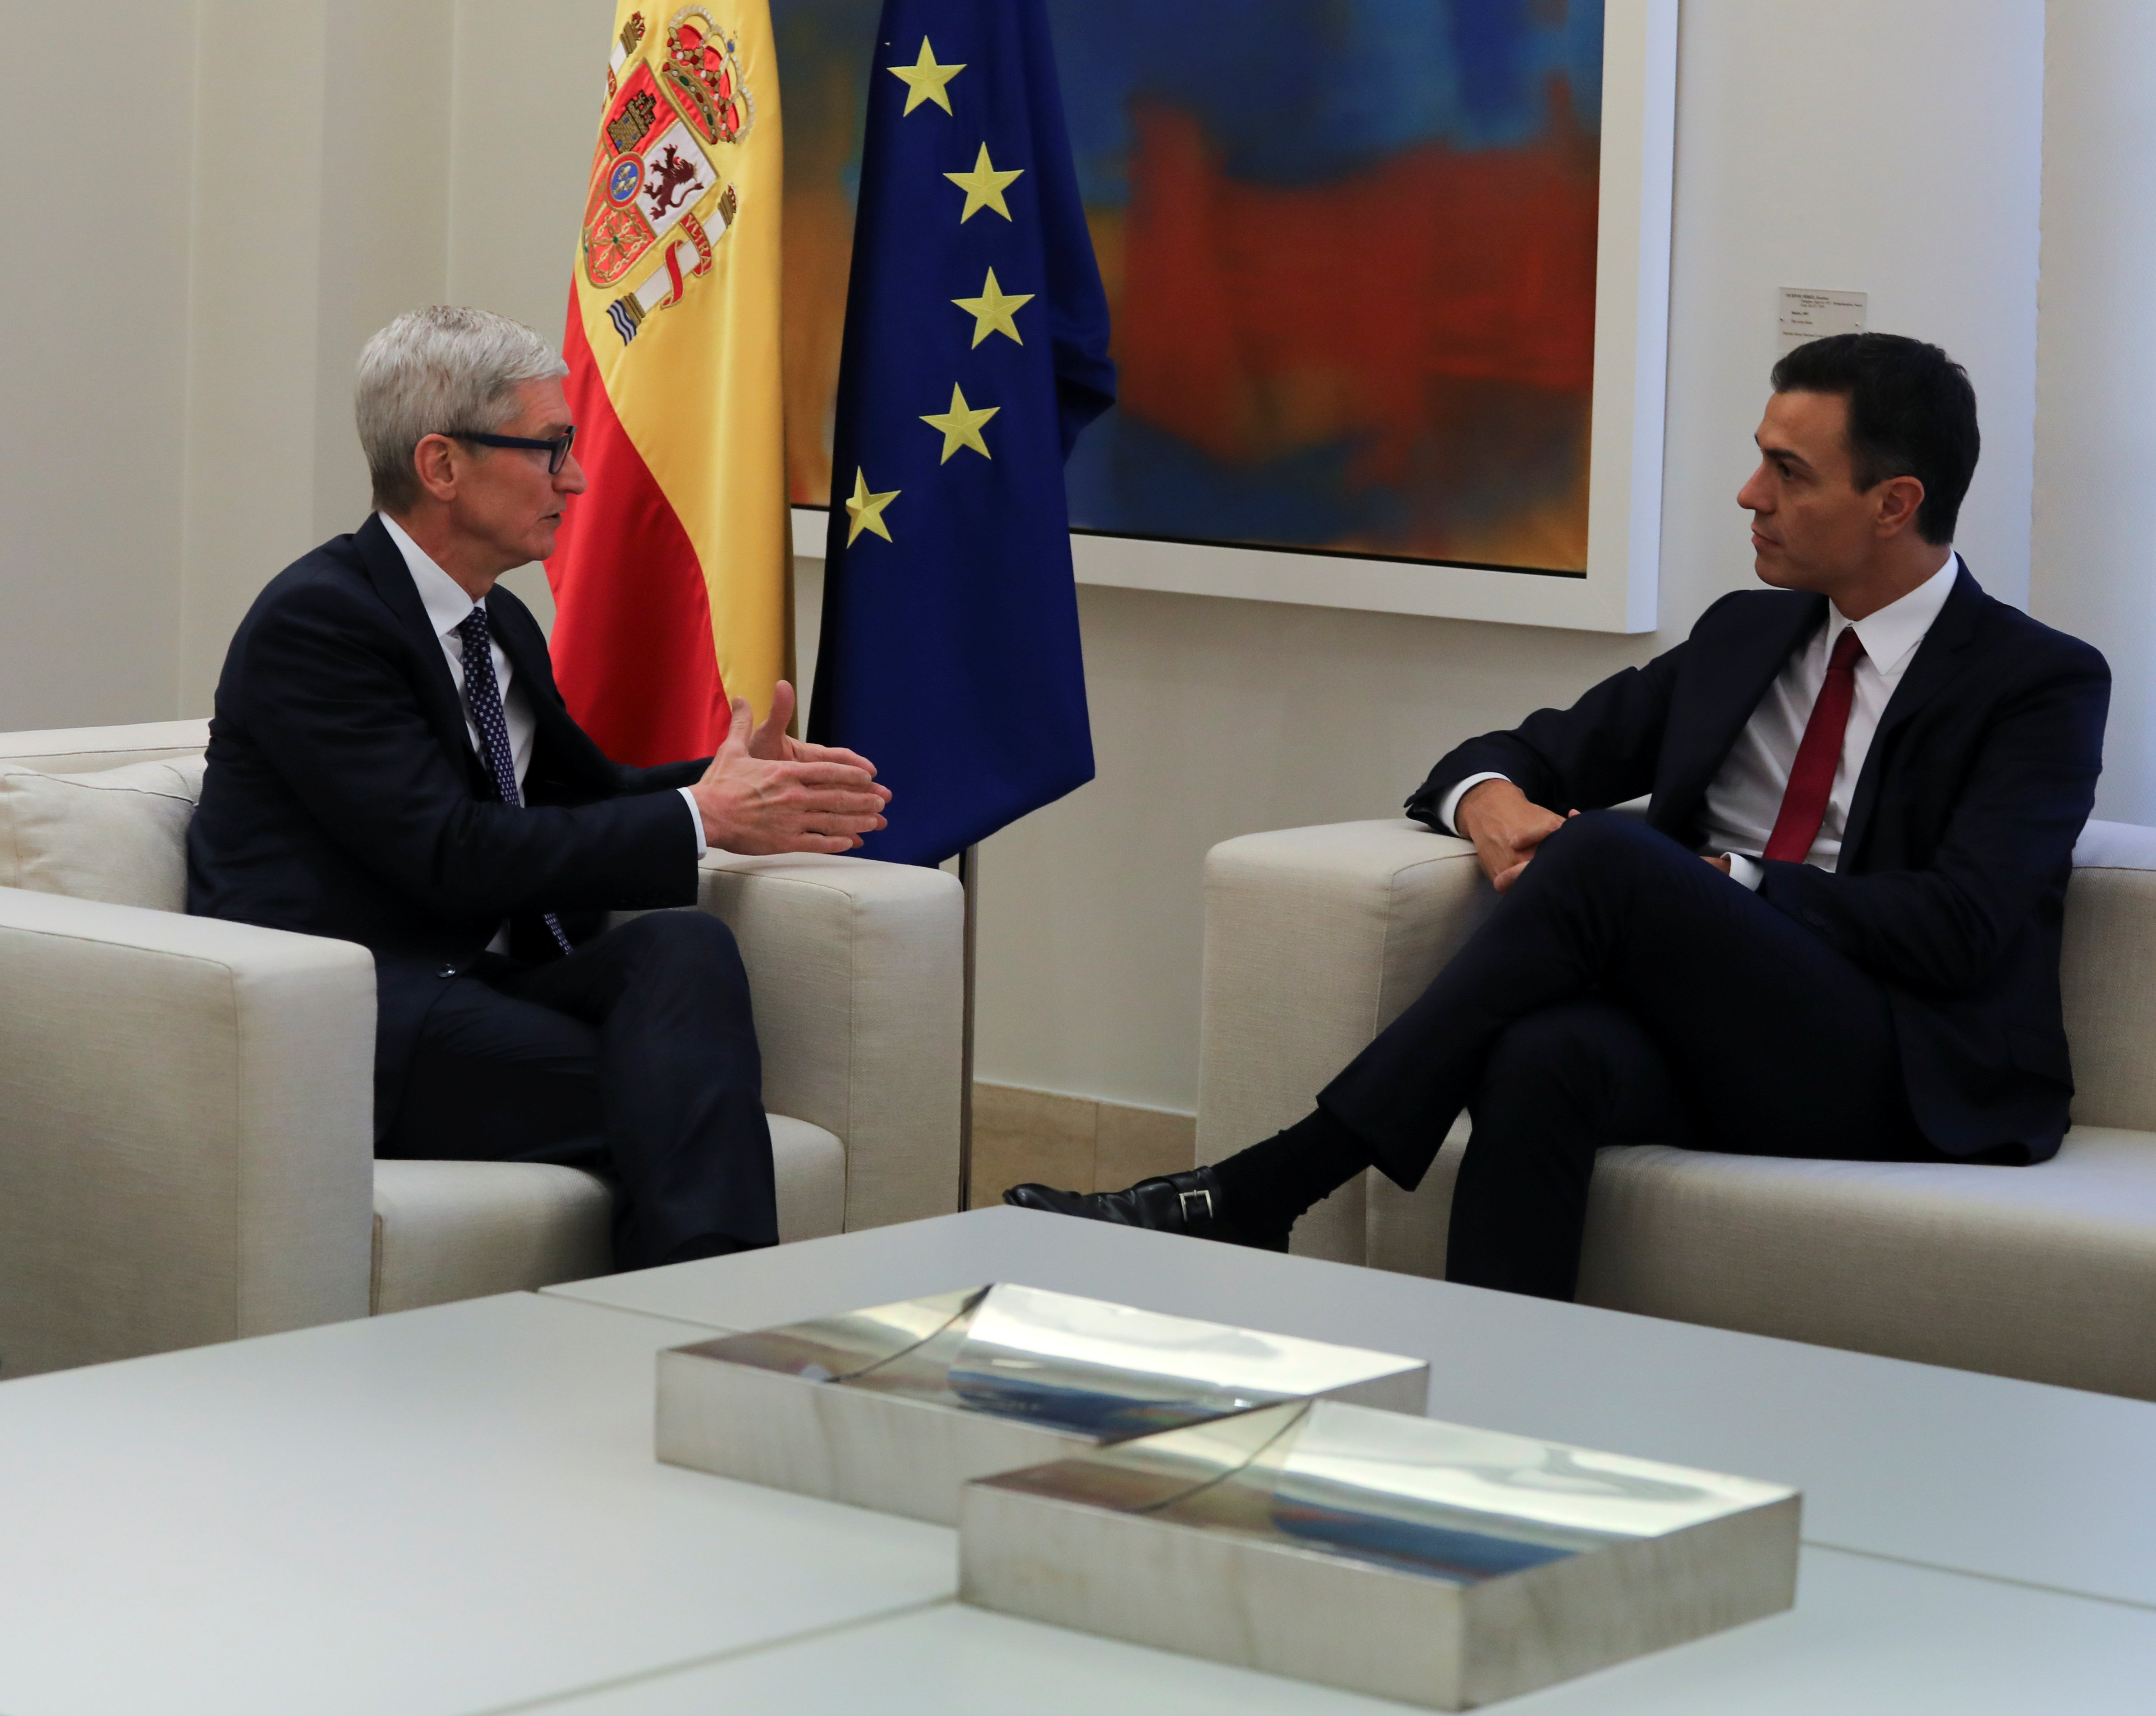 Apple CEO Tim Cook meets with Spain's Prime Minister Pedro Sanchez at the Moncloa Palace in Madrid, Spain, October 25, 2018. REUTERS/Sergio Perez